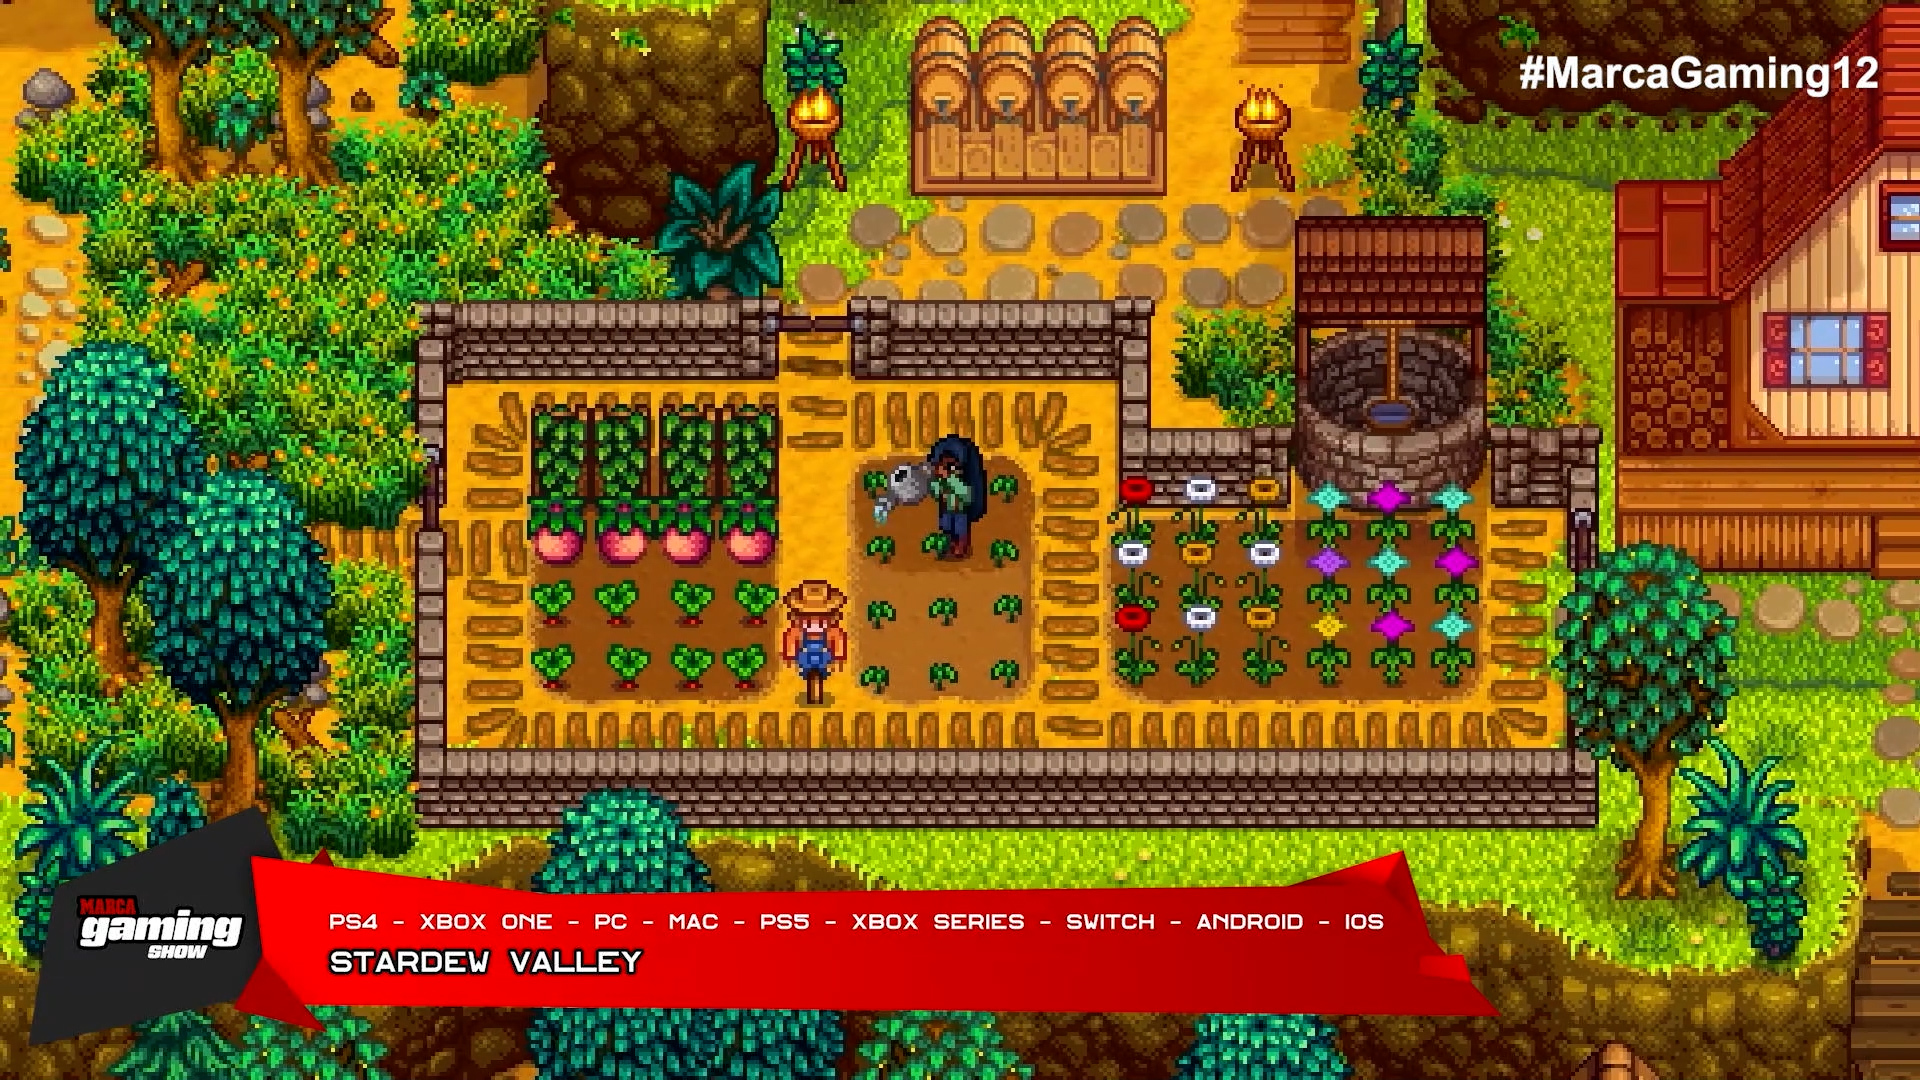 Stardew Valley (PS4 - XBOX ONE - PC - SWITCH - PS5 - XBOX SERIES - SWITCH - ANDROID - IOS )